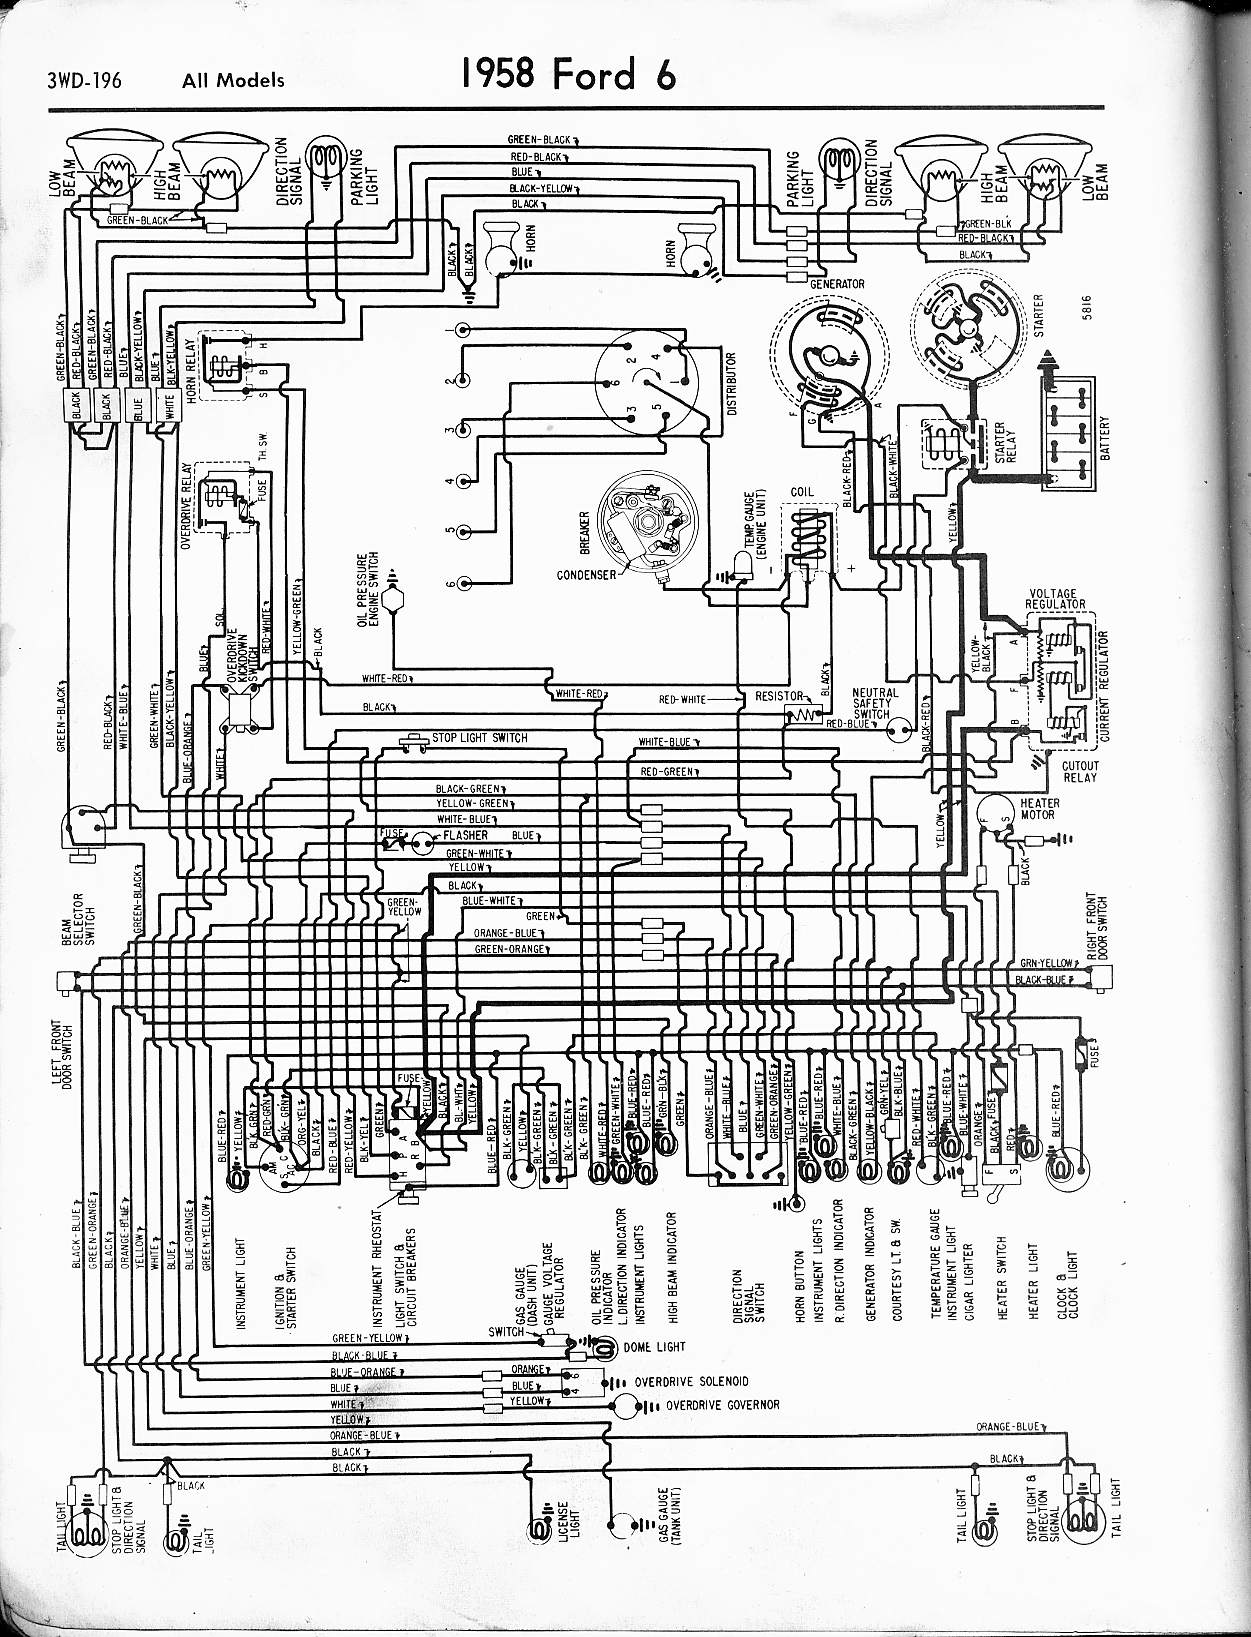 1960 ford wiring diagram electrical diagrams forum u2022 rh jimmellon co uk